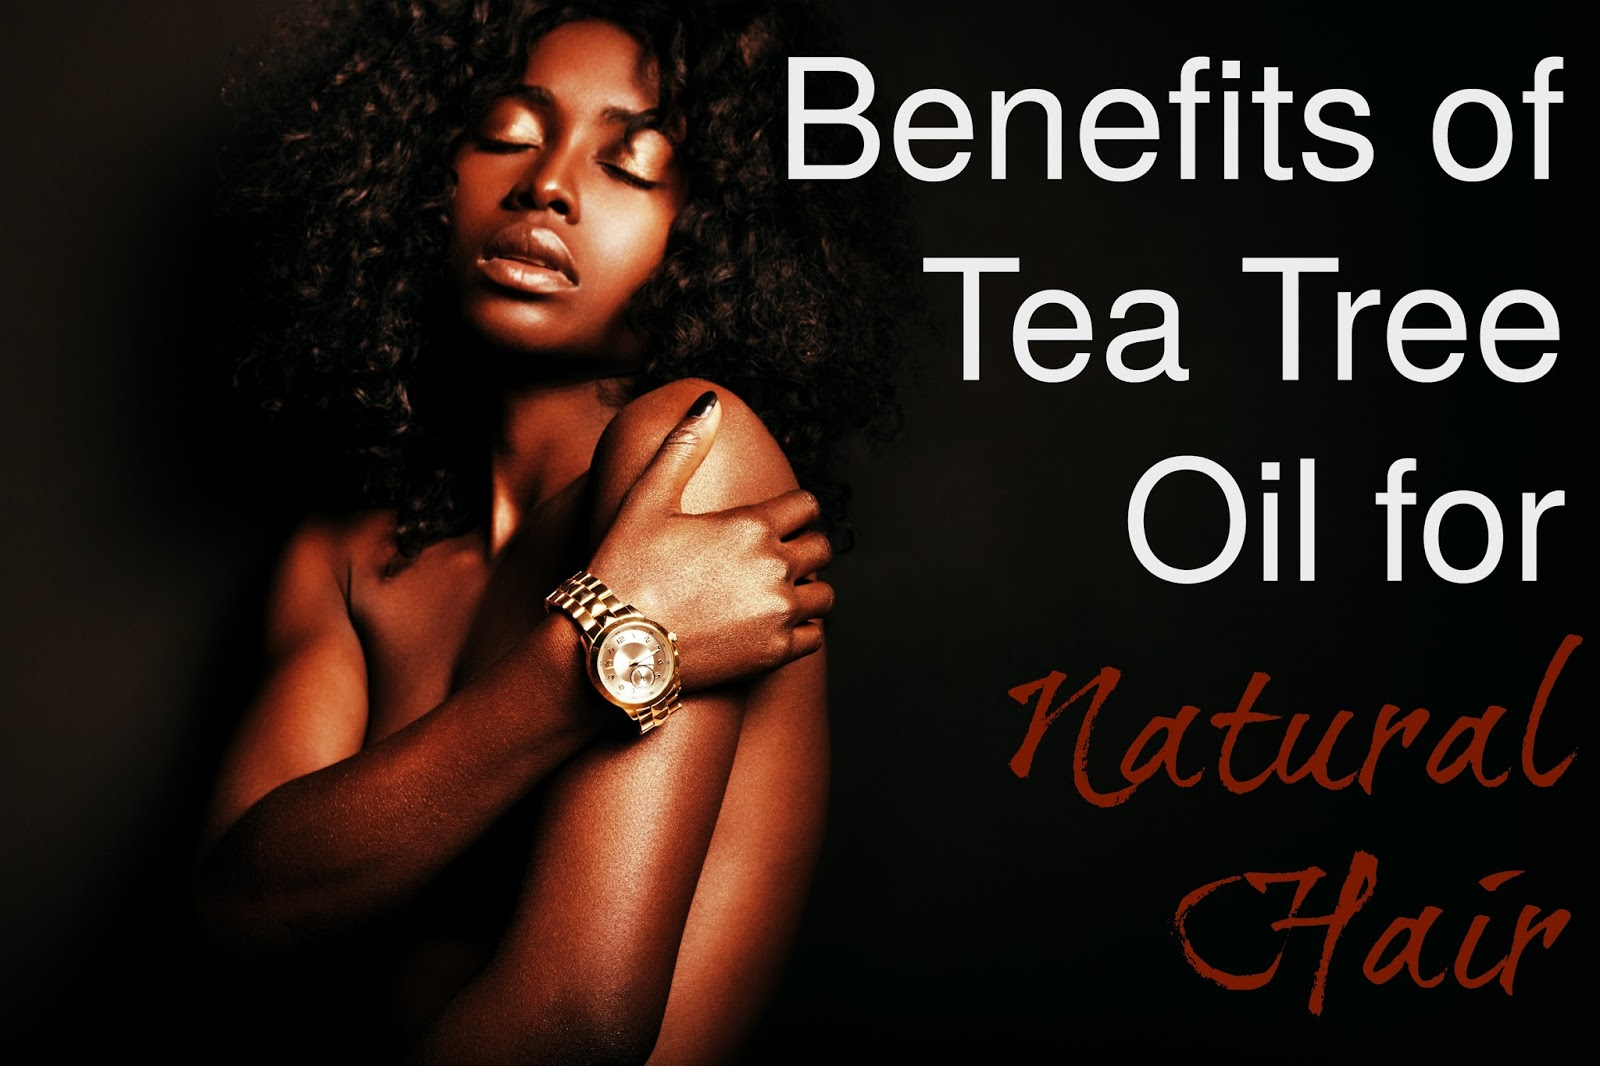 Want to find out the benefits of tea tree oil for your natural hair? Read more here.